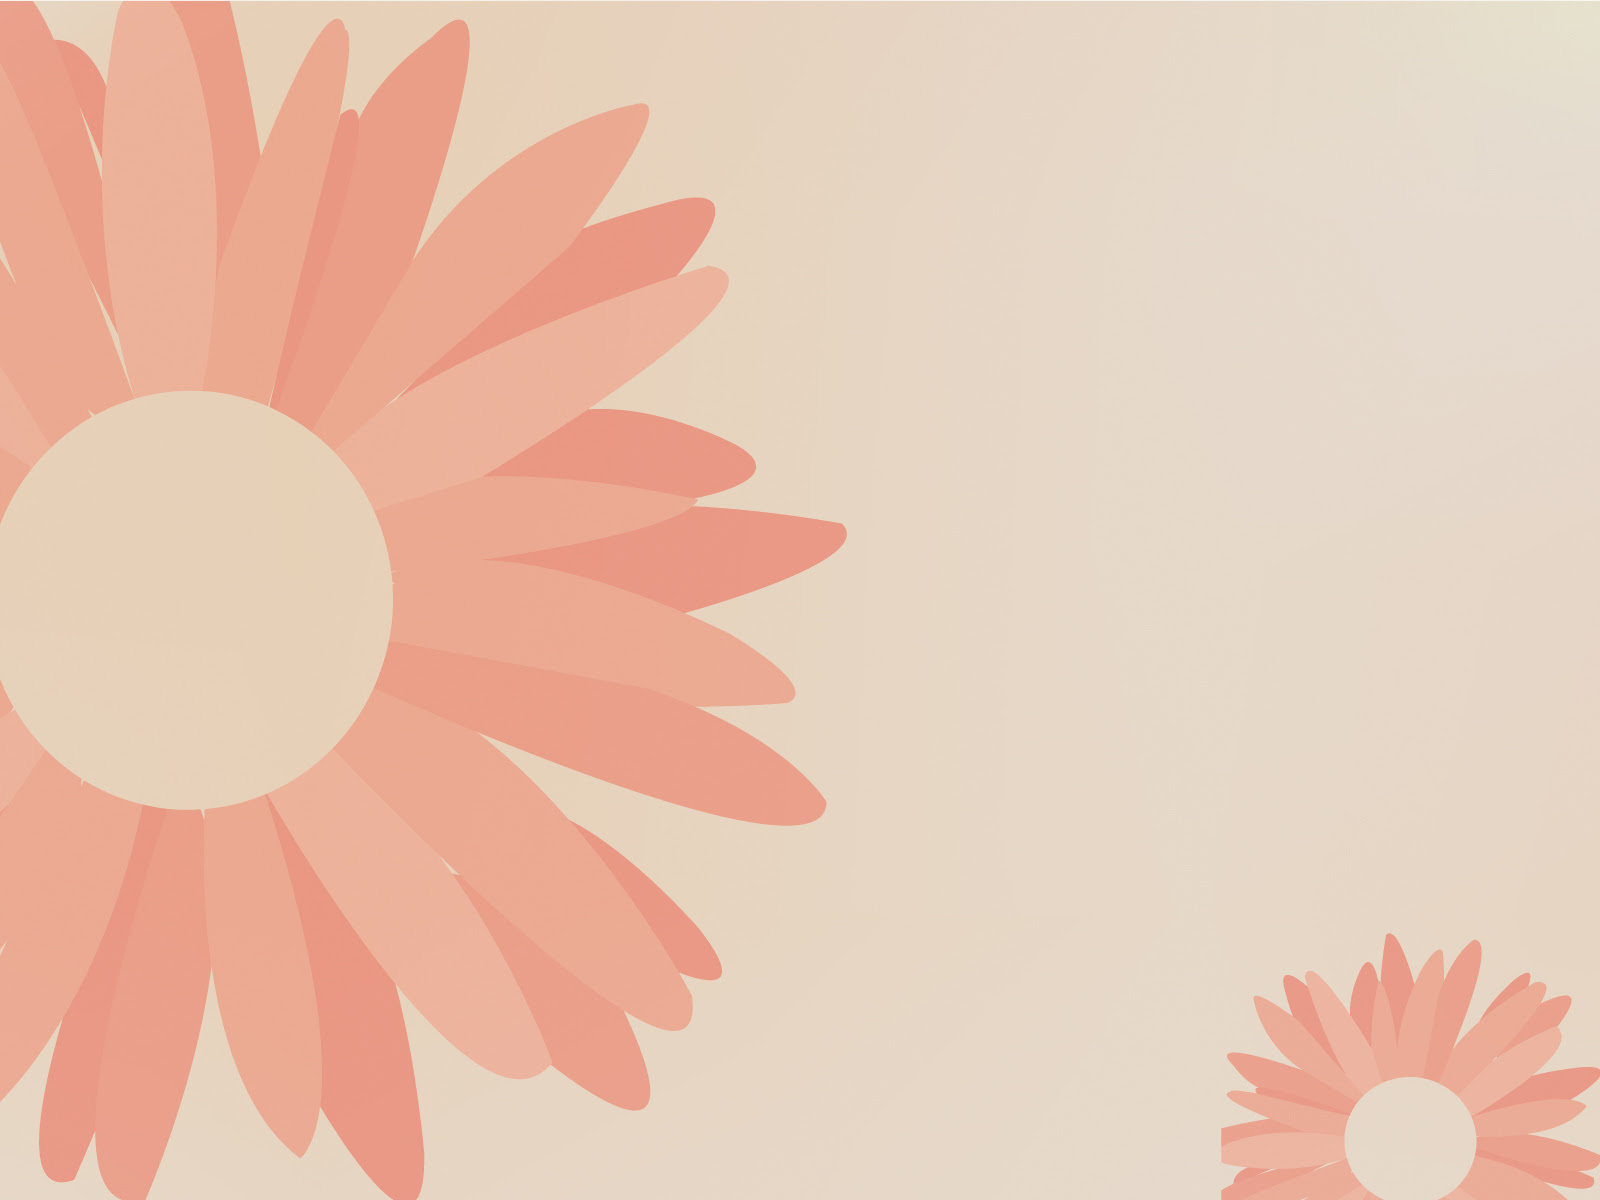 Hummingbird Pink Style Powerpoint Templates - Brown, Flowers, Orange - Free PPT  Backgrounds And Templates